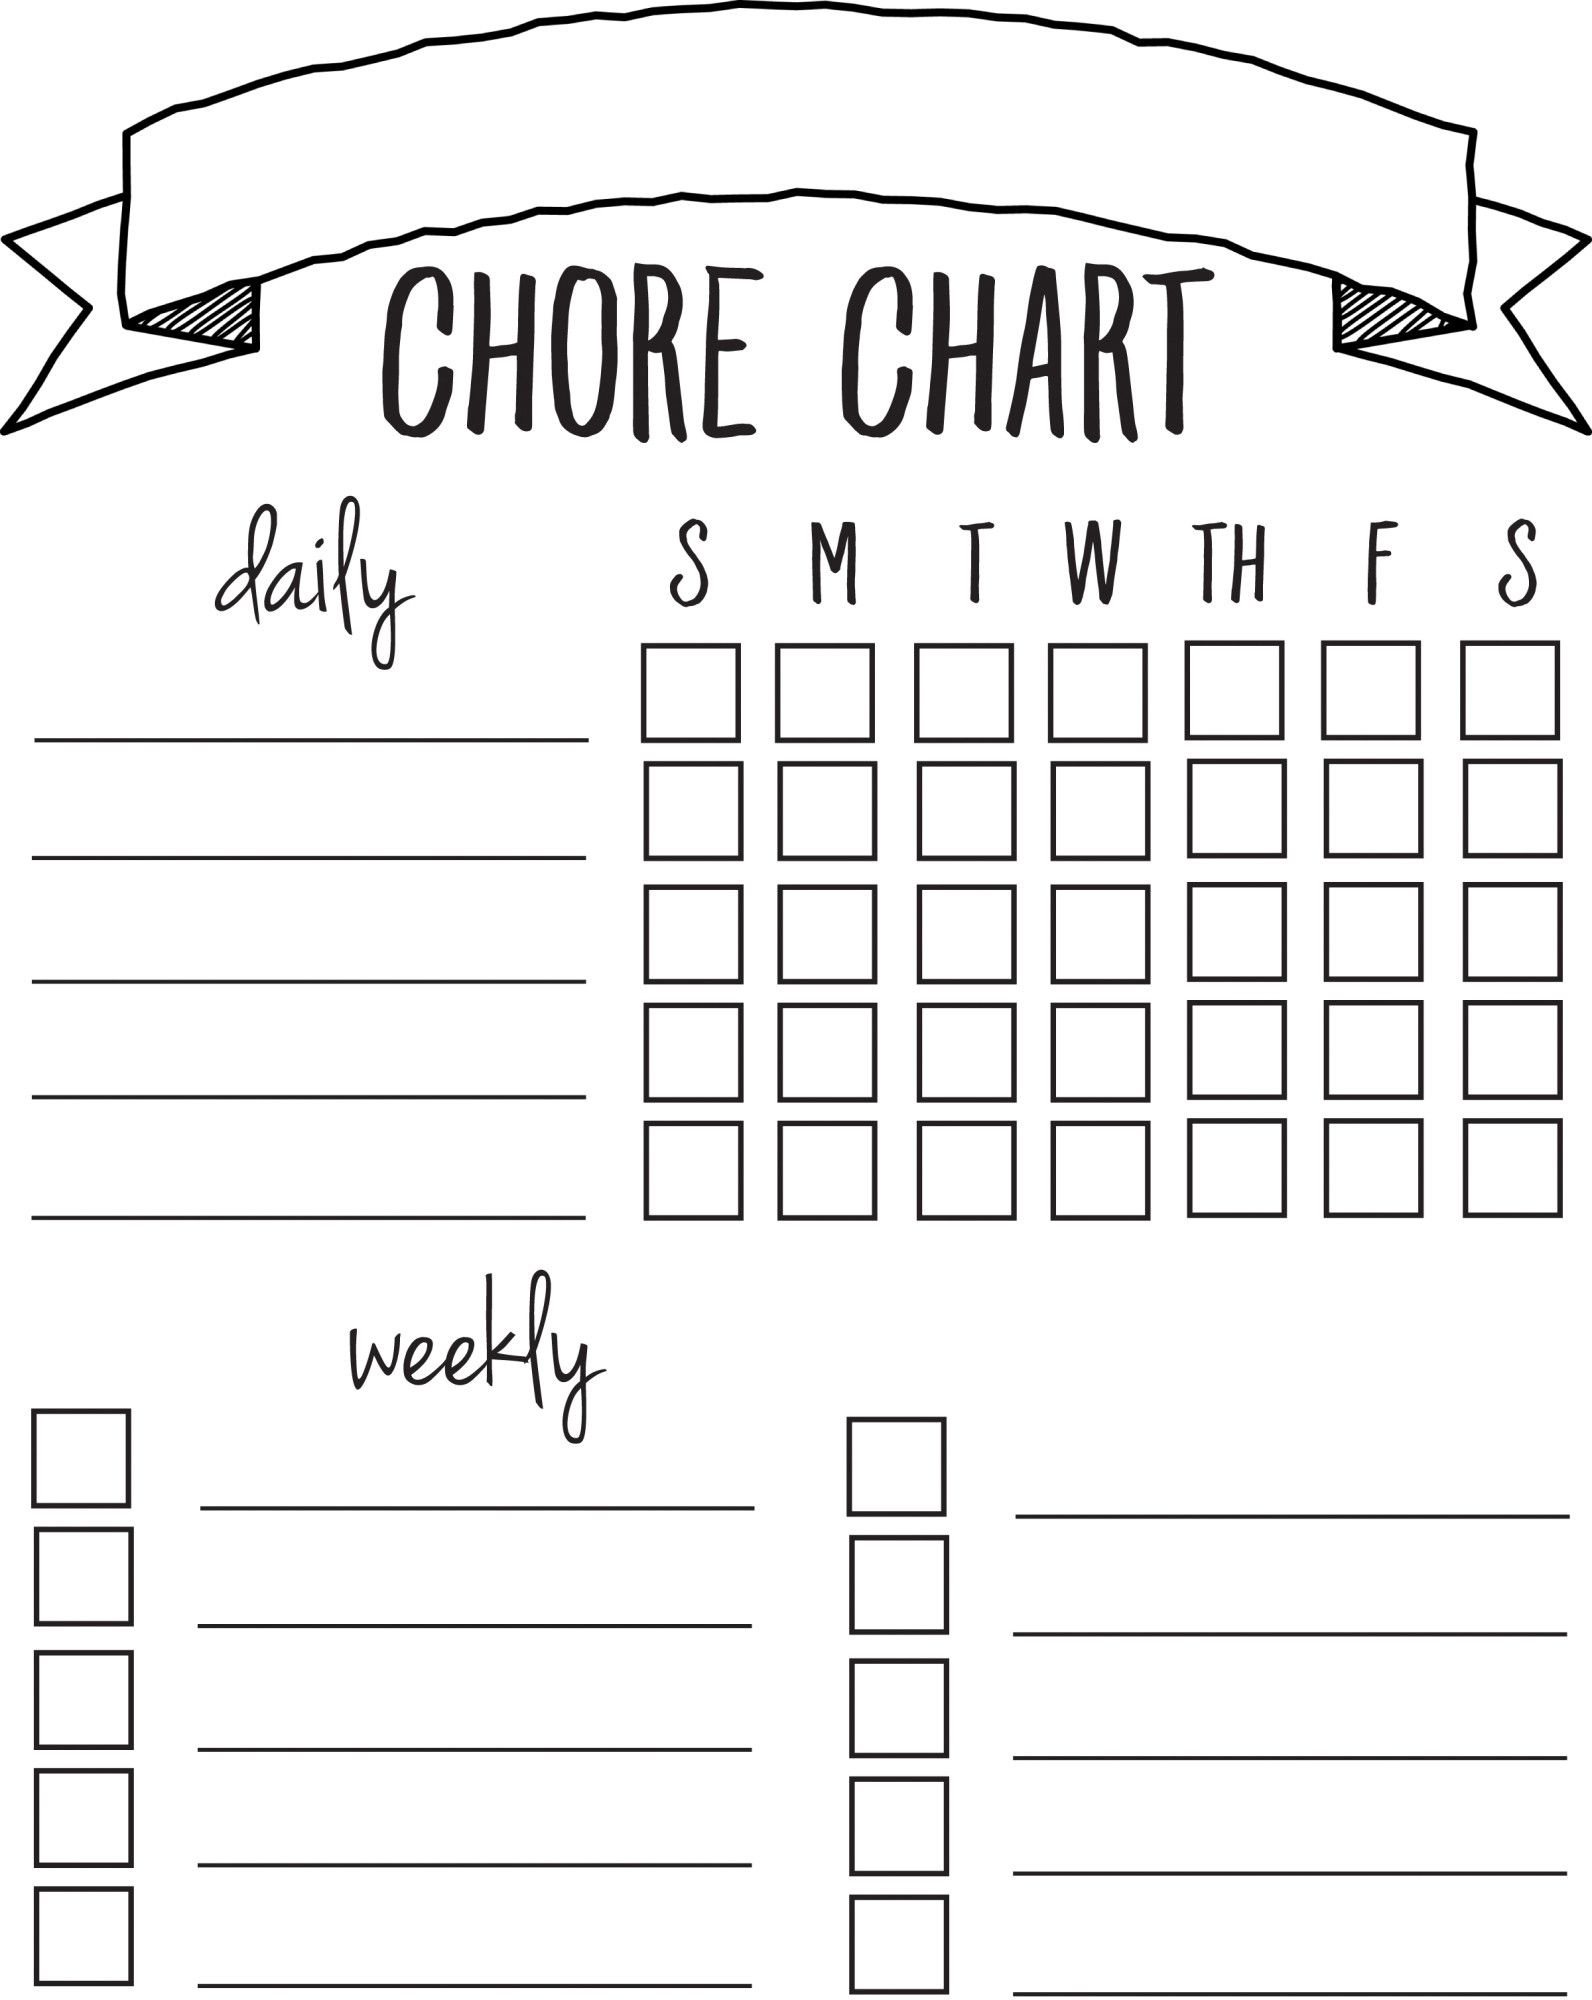 Diy Printable Chore Chart   Free Printables Nov/feb   Chore Chart - Free Printable Chore Charts For Kids With Pictures